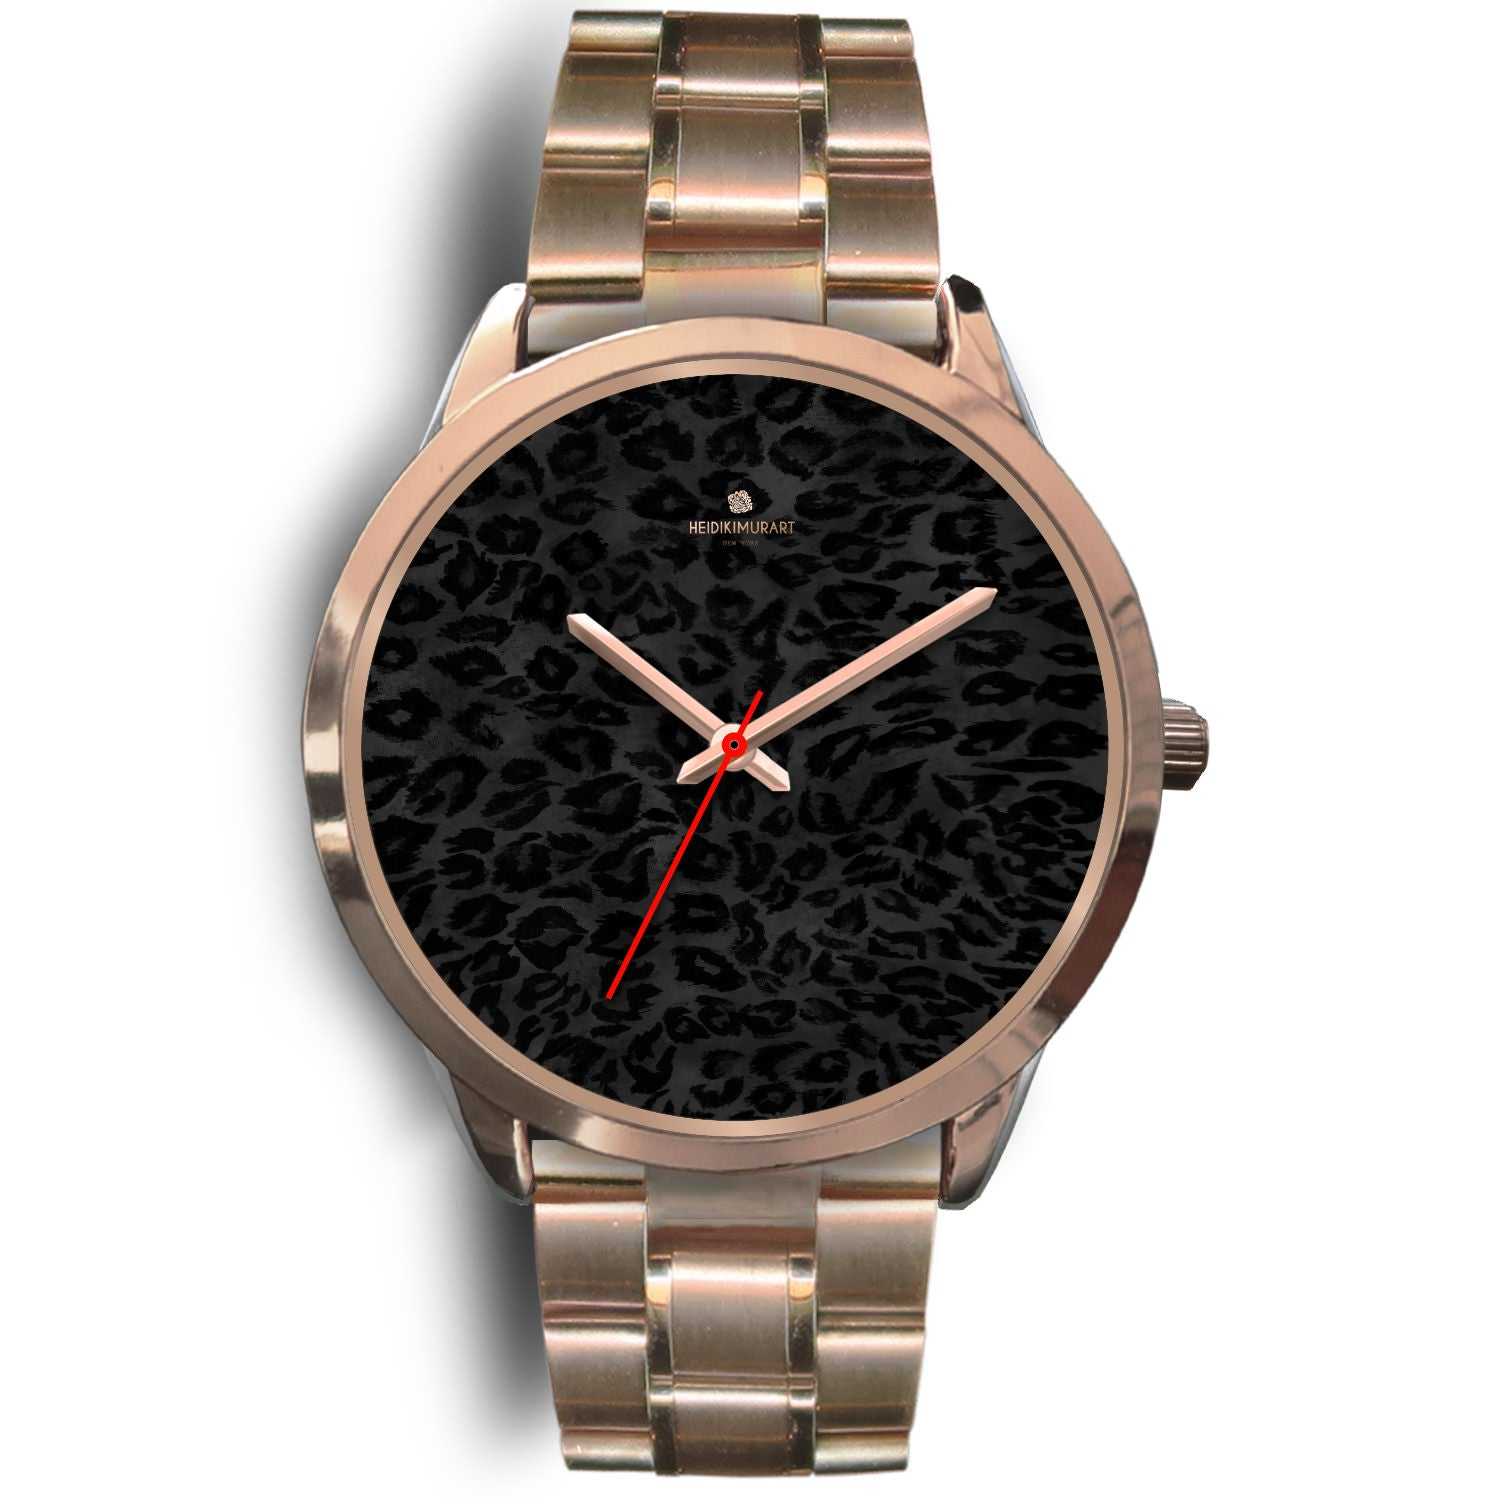 Black Leopard Animal Print Rose Gold Accent Designer Unisex Mens Womens Watch-Rose Gold Watch-Mens 40mm-Rose Gold Metal Link-Heidi Kimura Art LLC Black Leopard Unisex Watch, Black Leopard Animal Print Rose Gold Accent Designer Unisex Mens Womens Watch